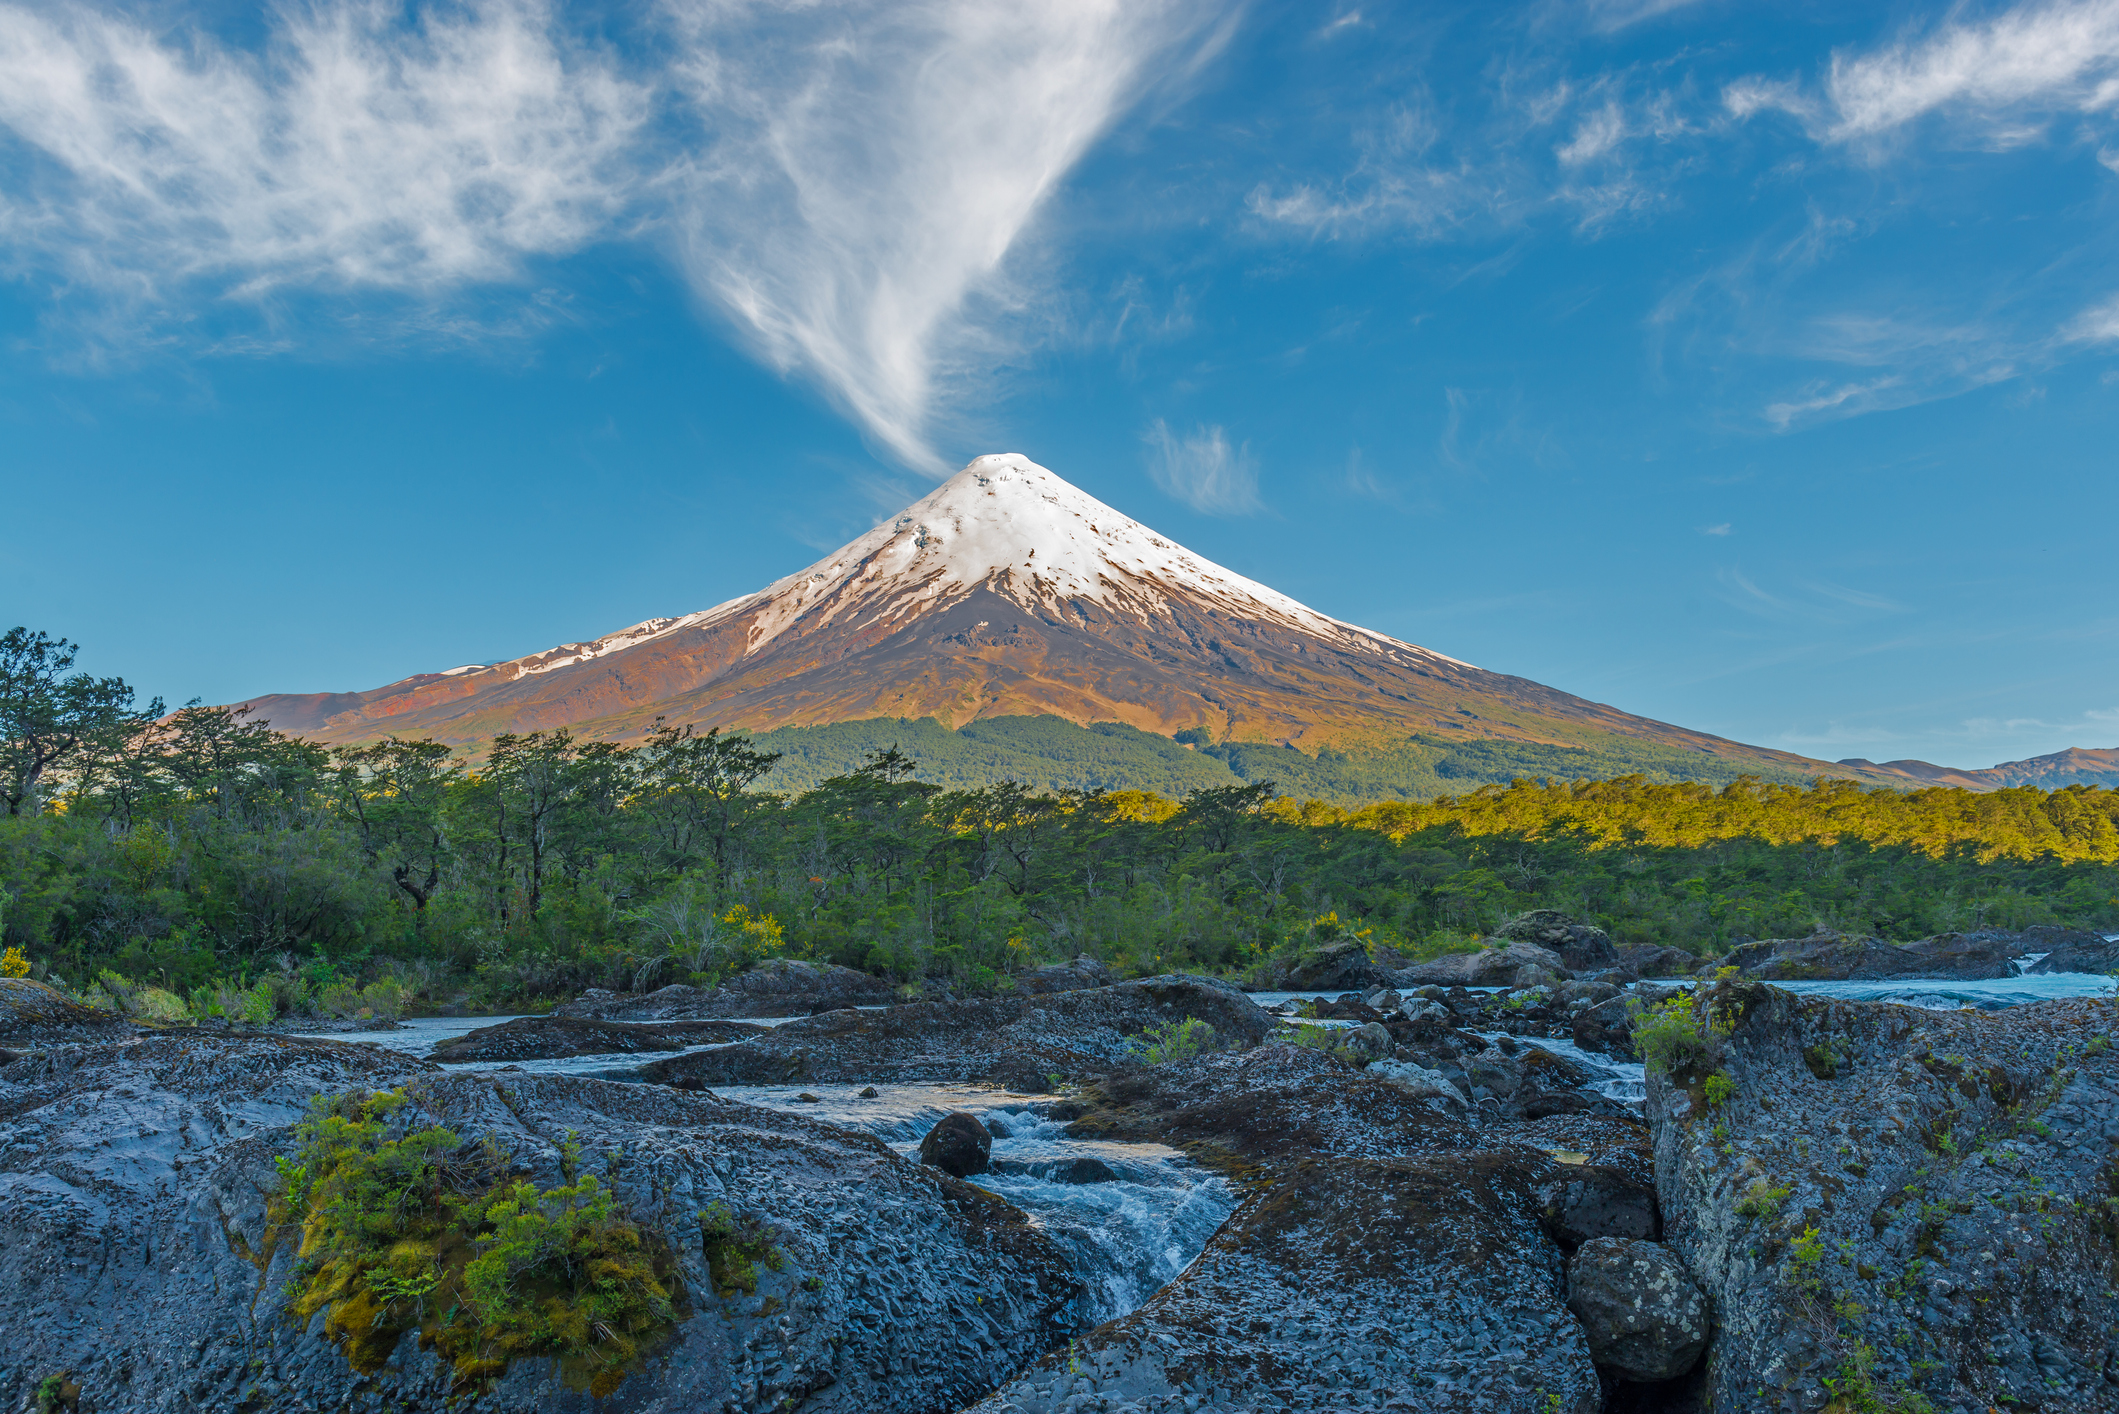 Osorno volcano with the Petrohue waterfalls and river in the foreground in the lake district near Puerto Varas and Puerto Montt, South Chile